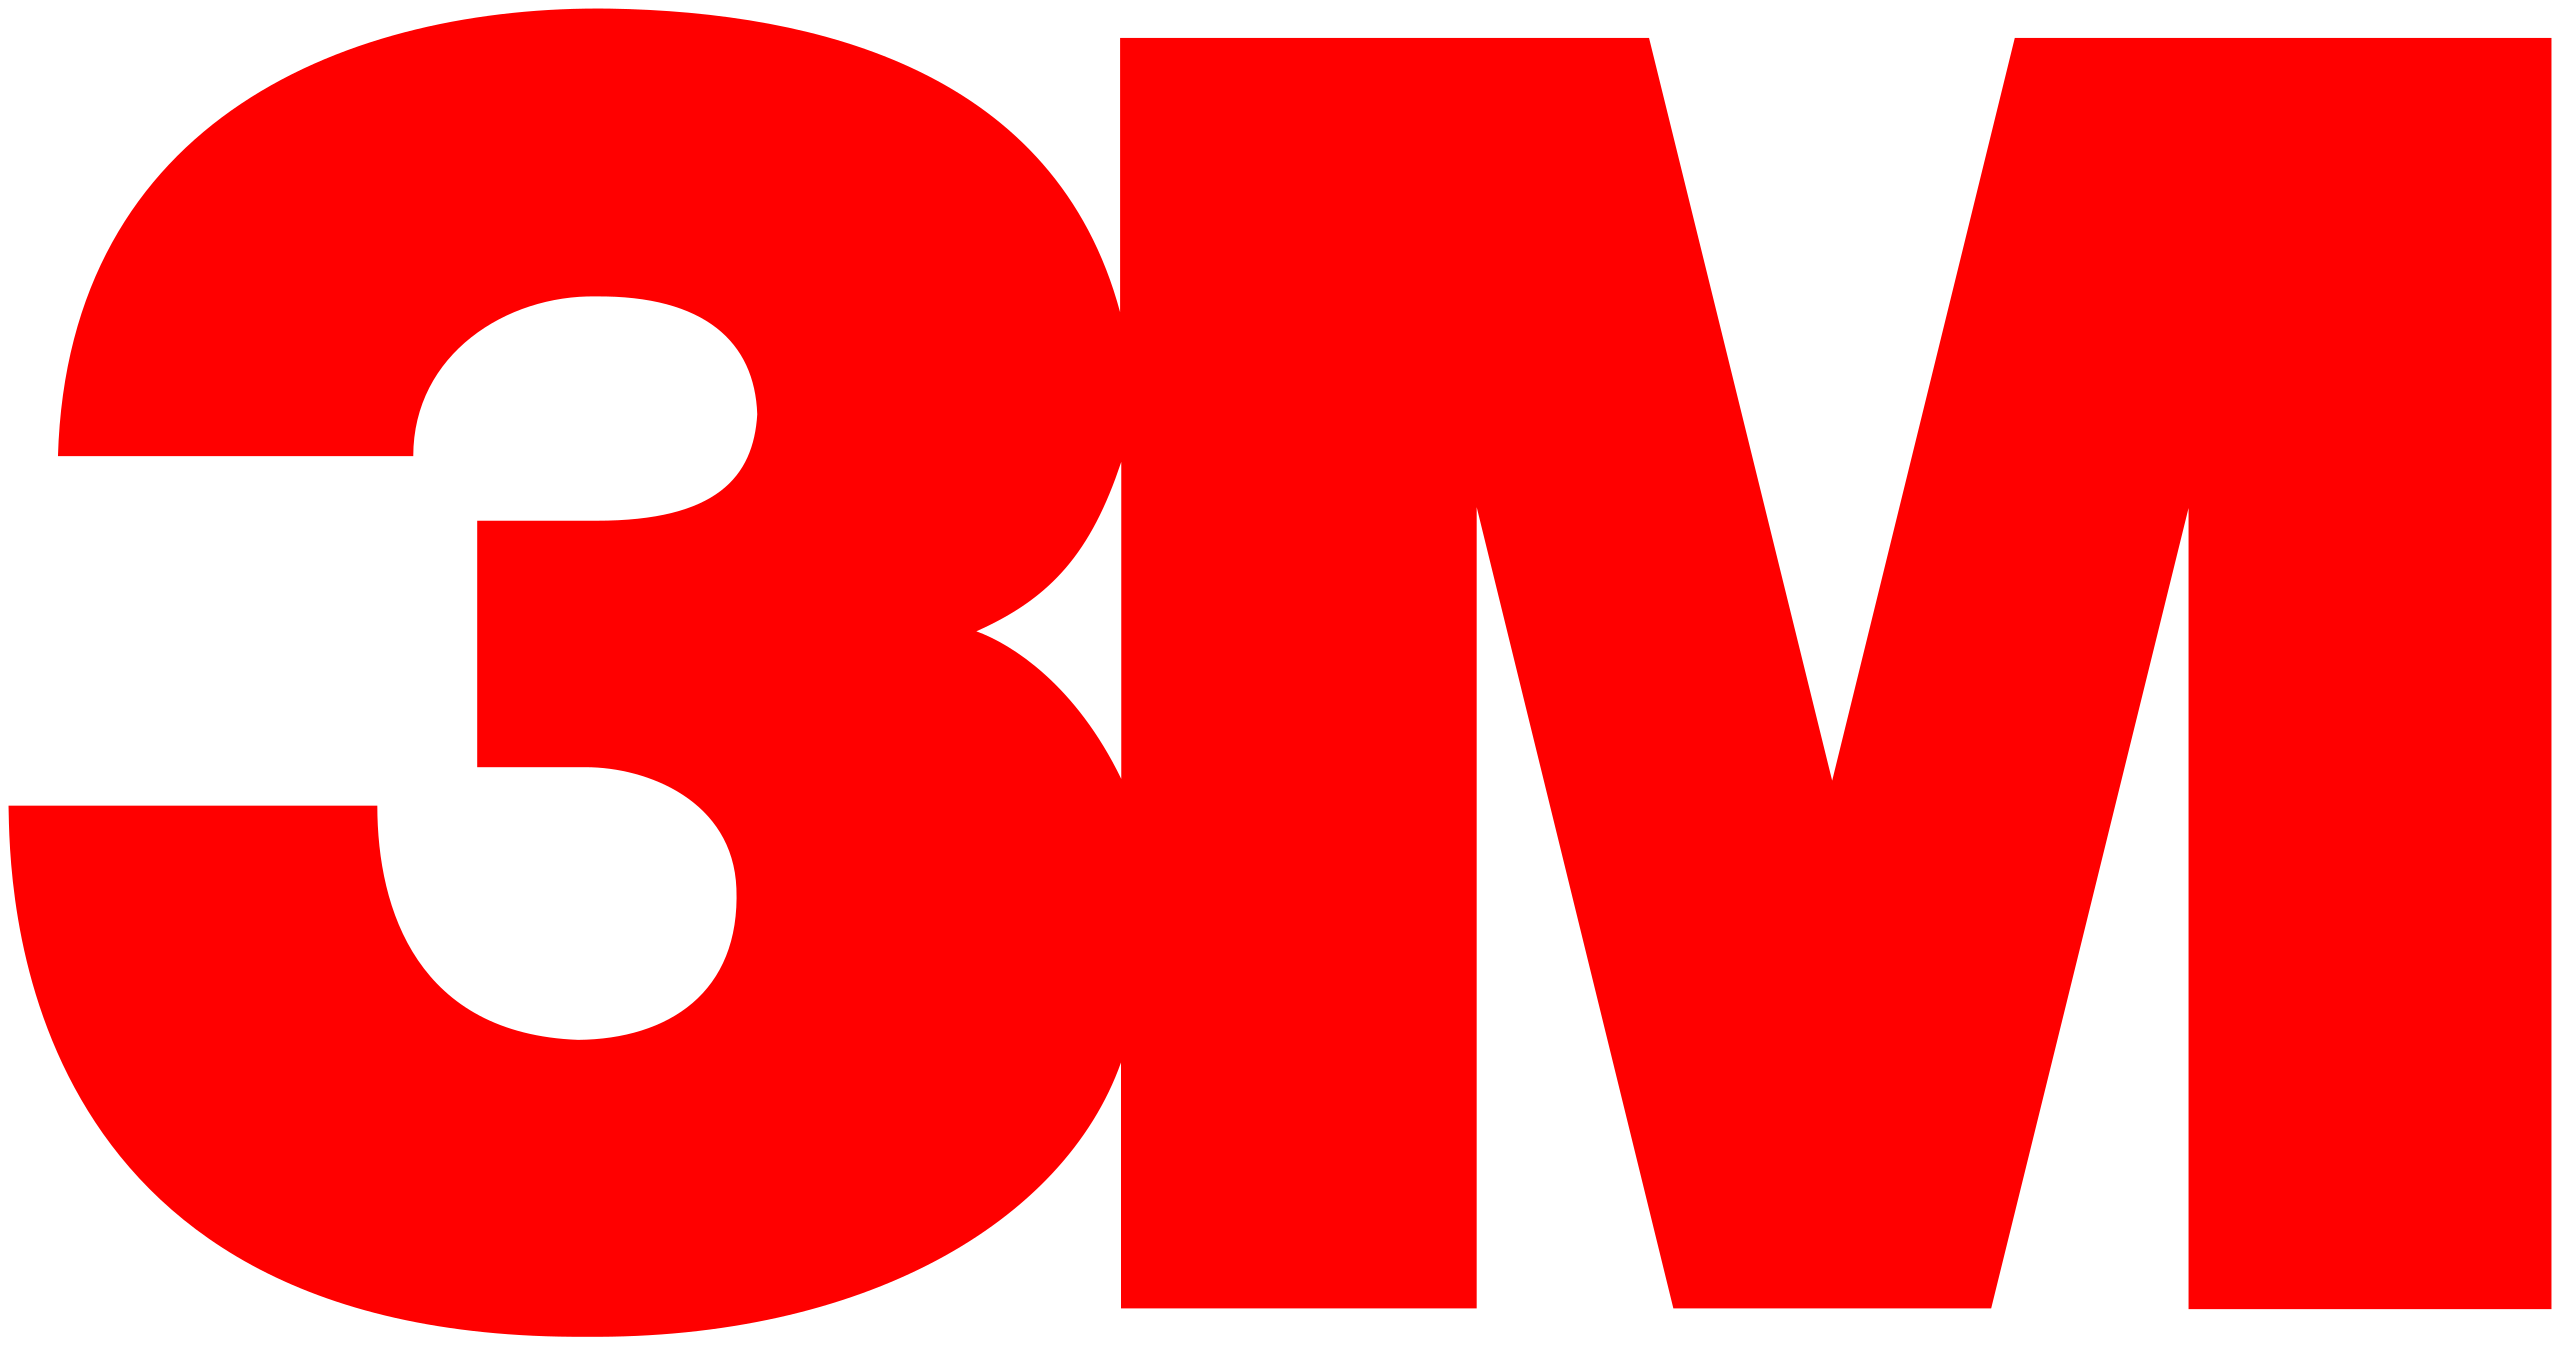 a logo with a red